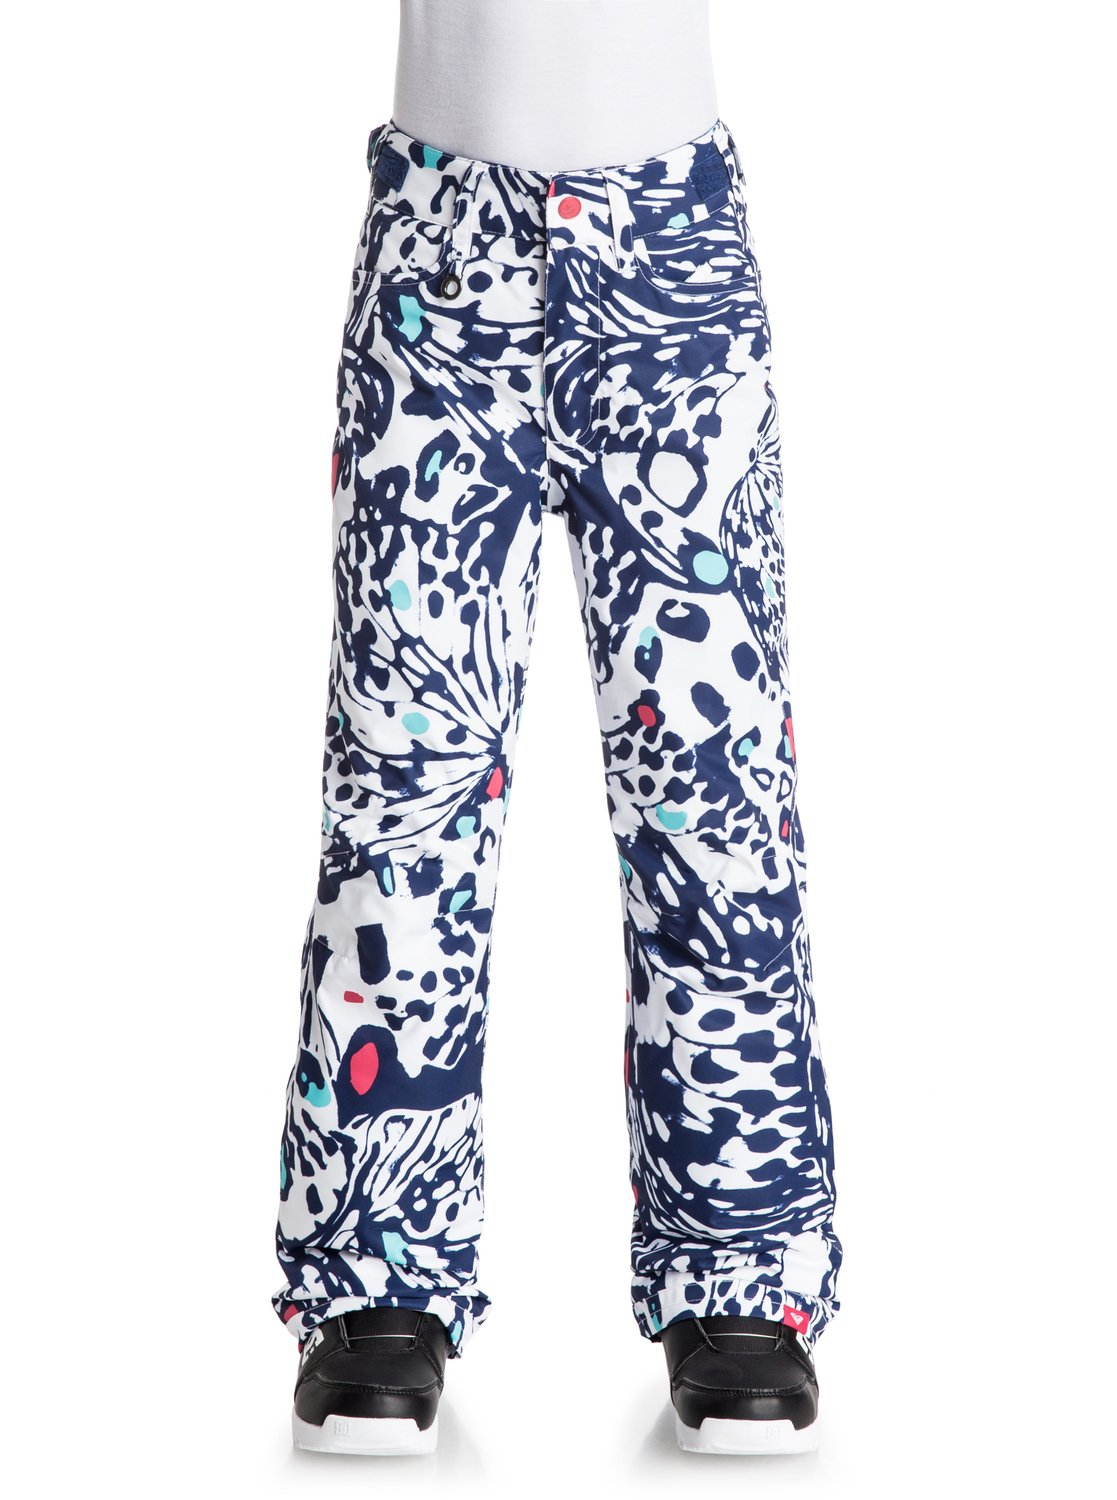 Сноубордические штаны Backyard PrintedThe Backyard Printed snow pants timeless regular fit has been crafted with 10K ROXY DryFlight® technology waterproofing and Warmflight® level 2 insulation for low-bulk warmth, lightweight, breathable taffeta lining and critically-taped seams for extra protection in the most exposed areas.<br>